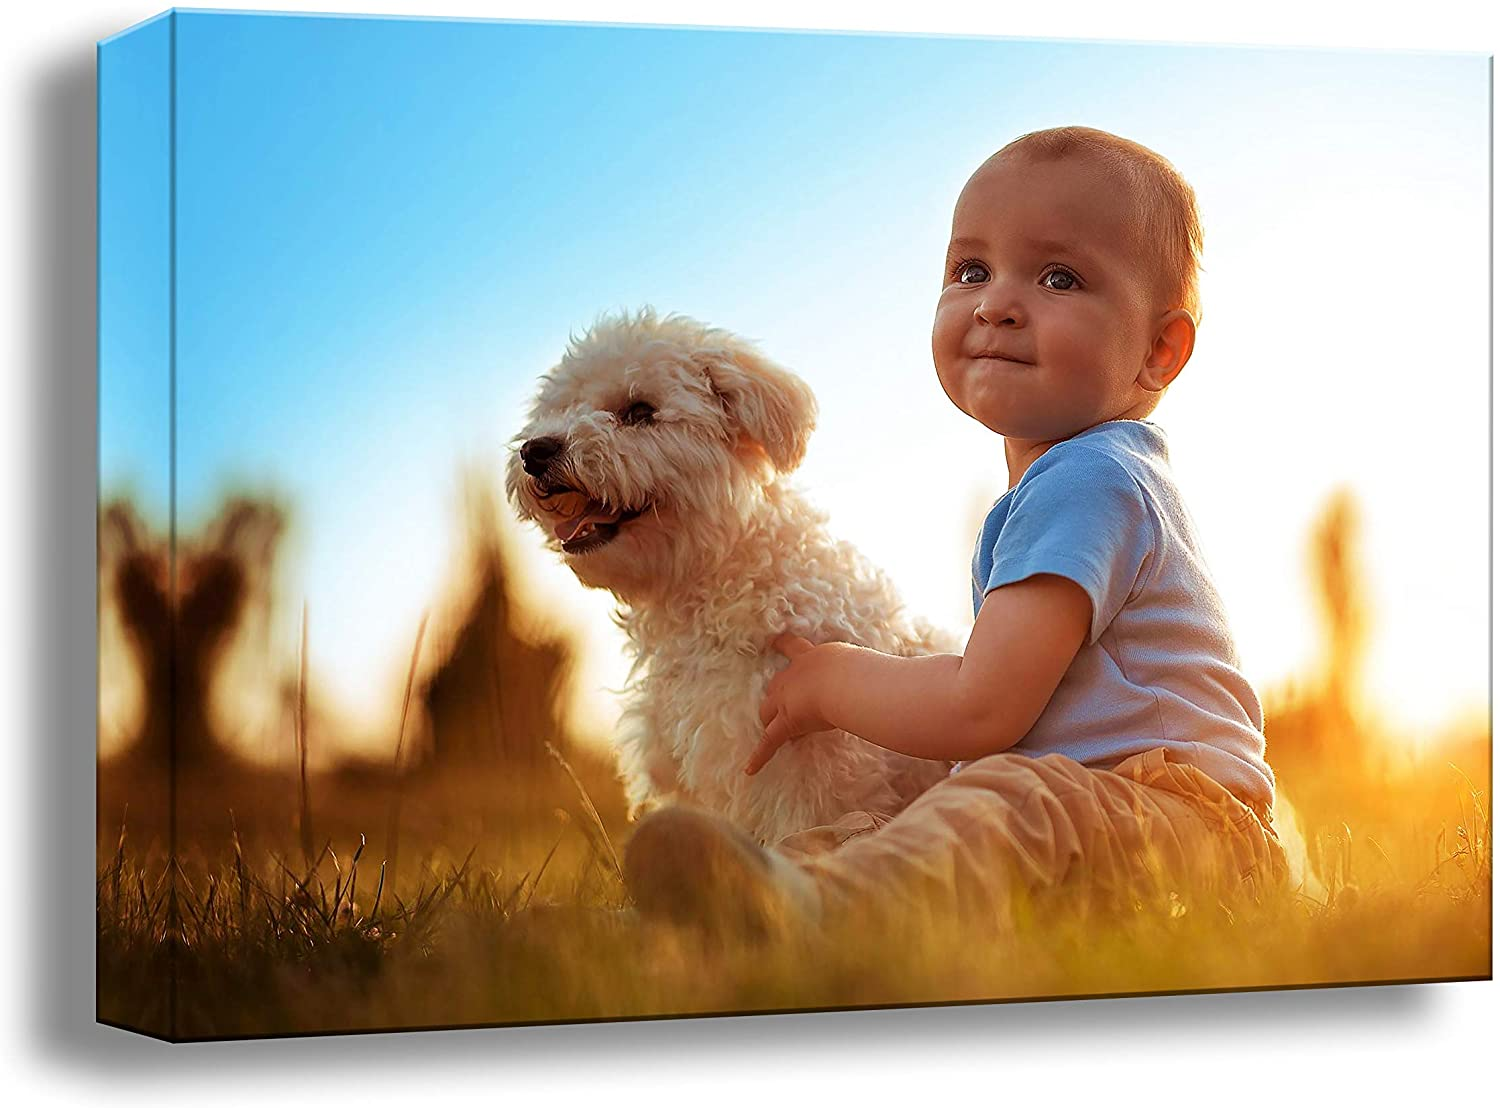 Canvas Prints with Your Photos, Custom Pictures On Gallery Wrapped Giclee Painting Wall Art Home Decor Personalized Gift 16x16 Inch (40cmx40cm)